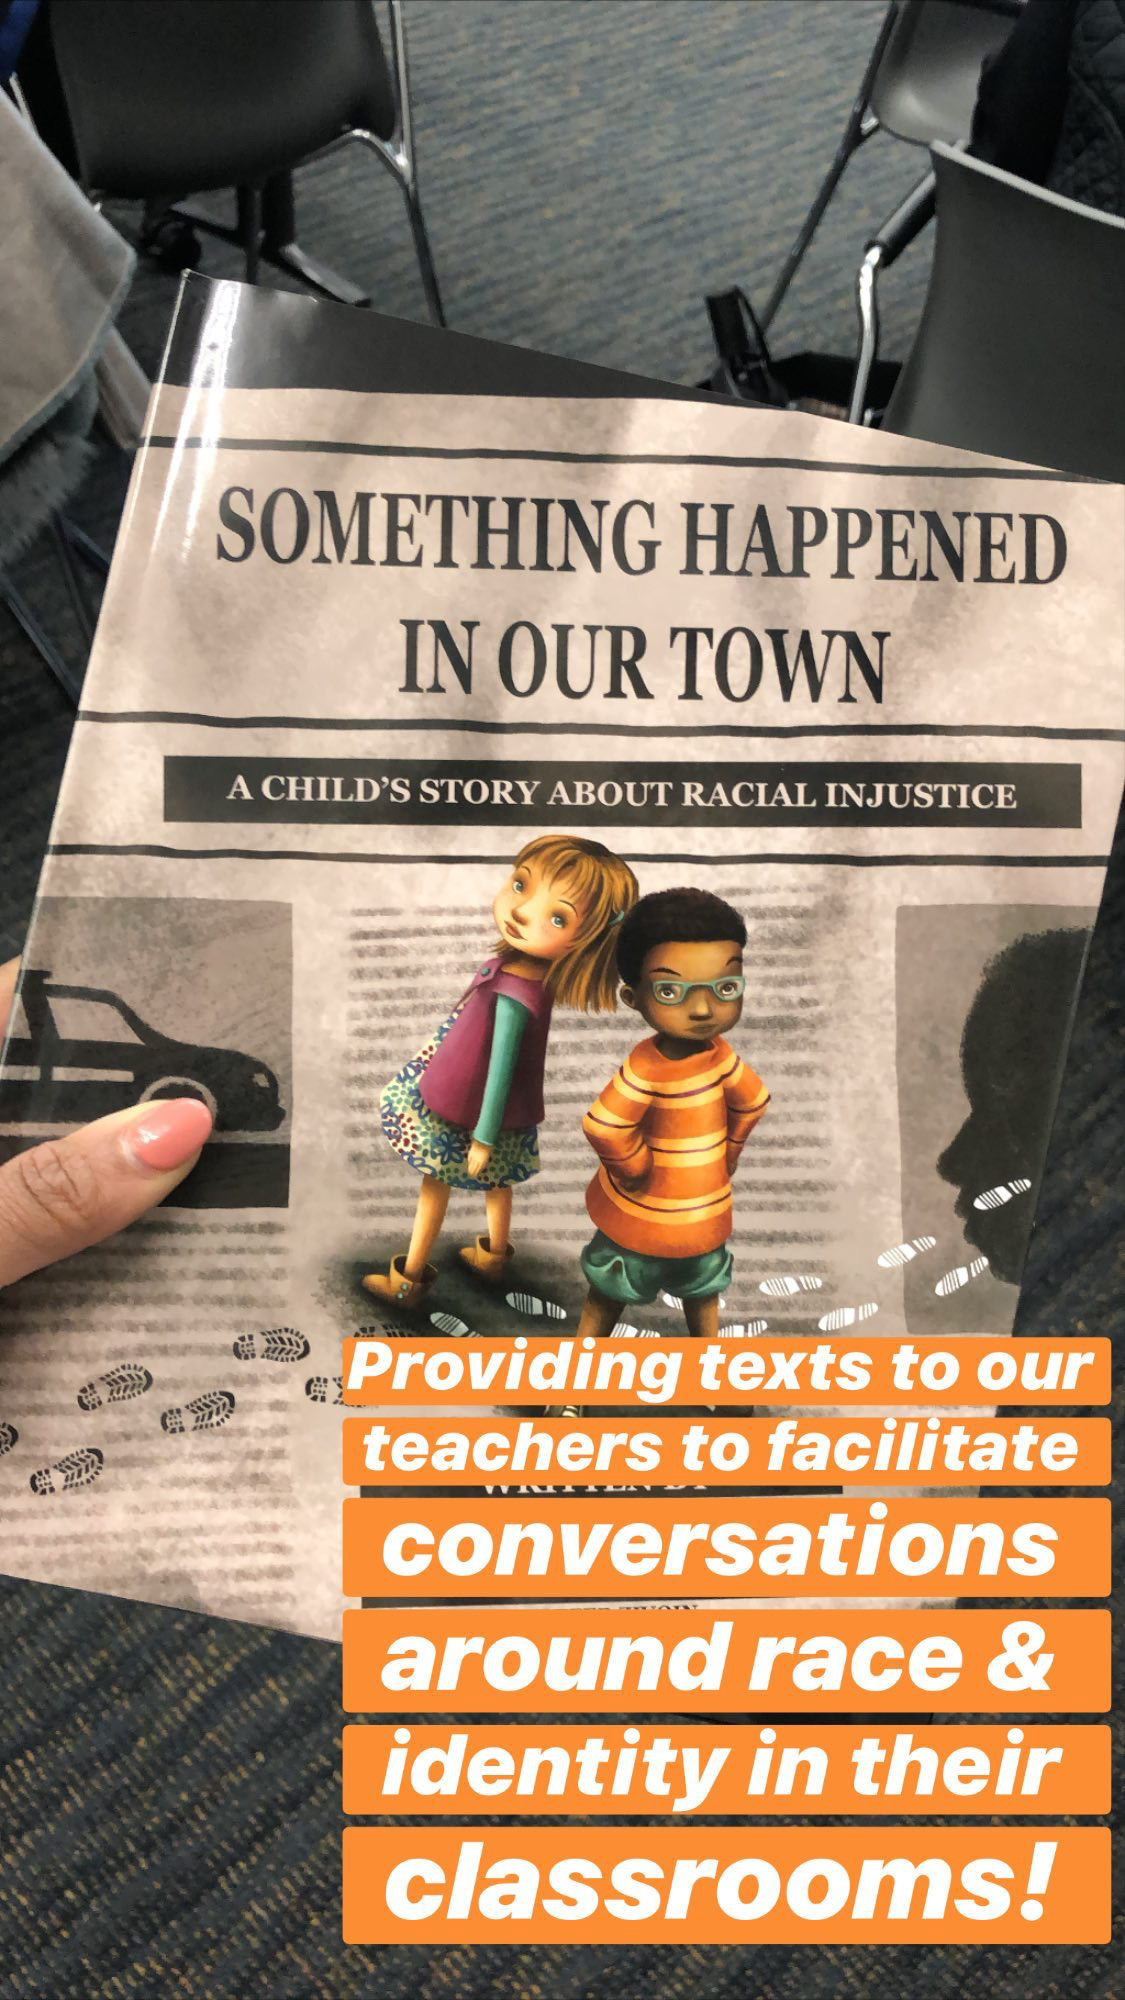 image of the book cover from the text: Something happened in our town. A child's story about racial injustice. Text on image says: Providing texts to our teachers to facilitate conversations around race and identity in their classrooms!